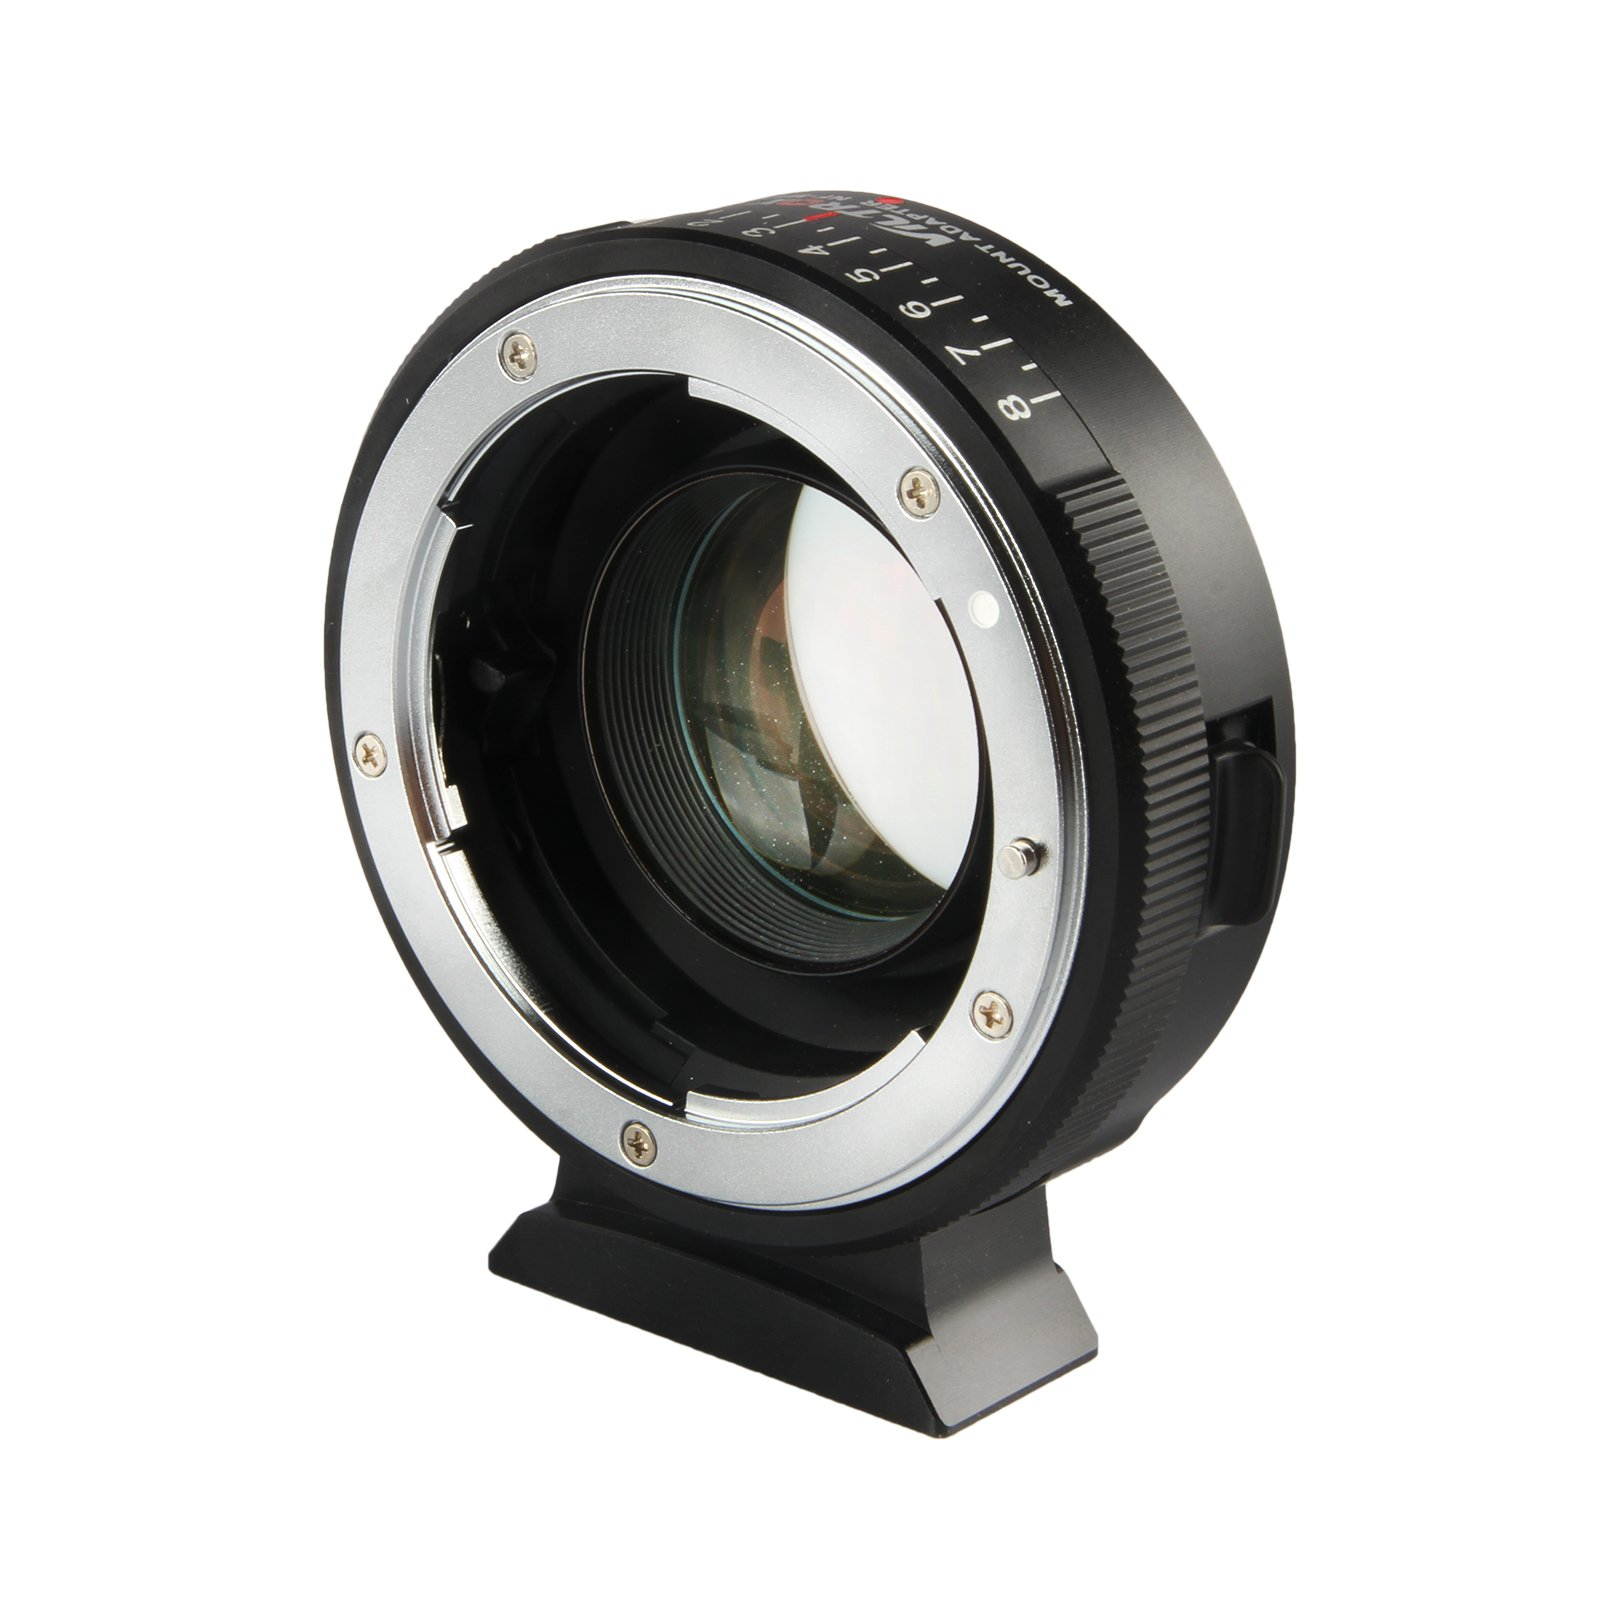 NF-M43X Focal Reducer Speed Booster 0.71X Lens Mount Adapter for Nikon G&D Mount Lens to M4/3 Mirrorless Camera with Manual Focus, Infinity Focus and 8 Adjustable Aperture by VILTROX